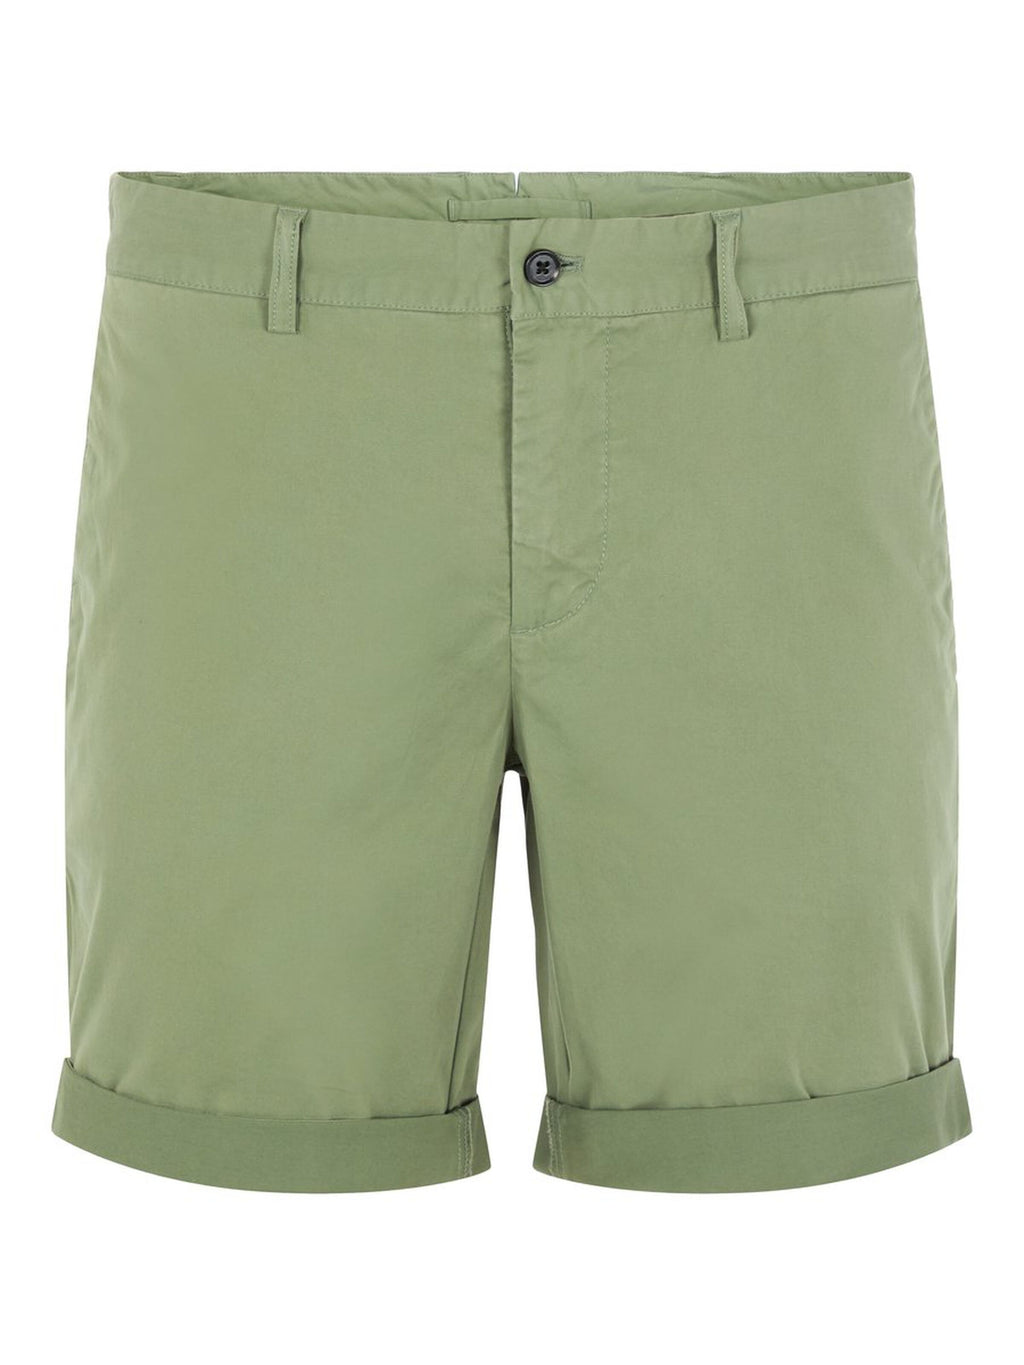 Nathan Sage Green Cotton Shorts